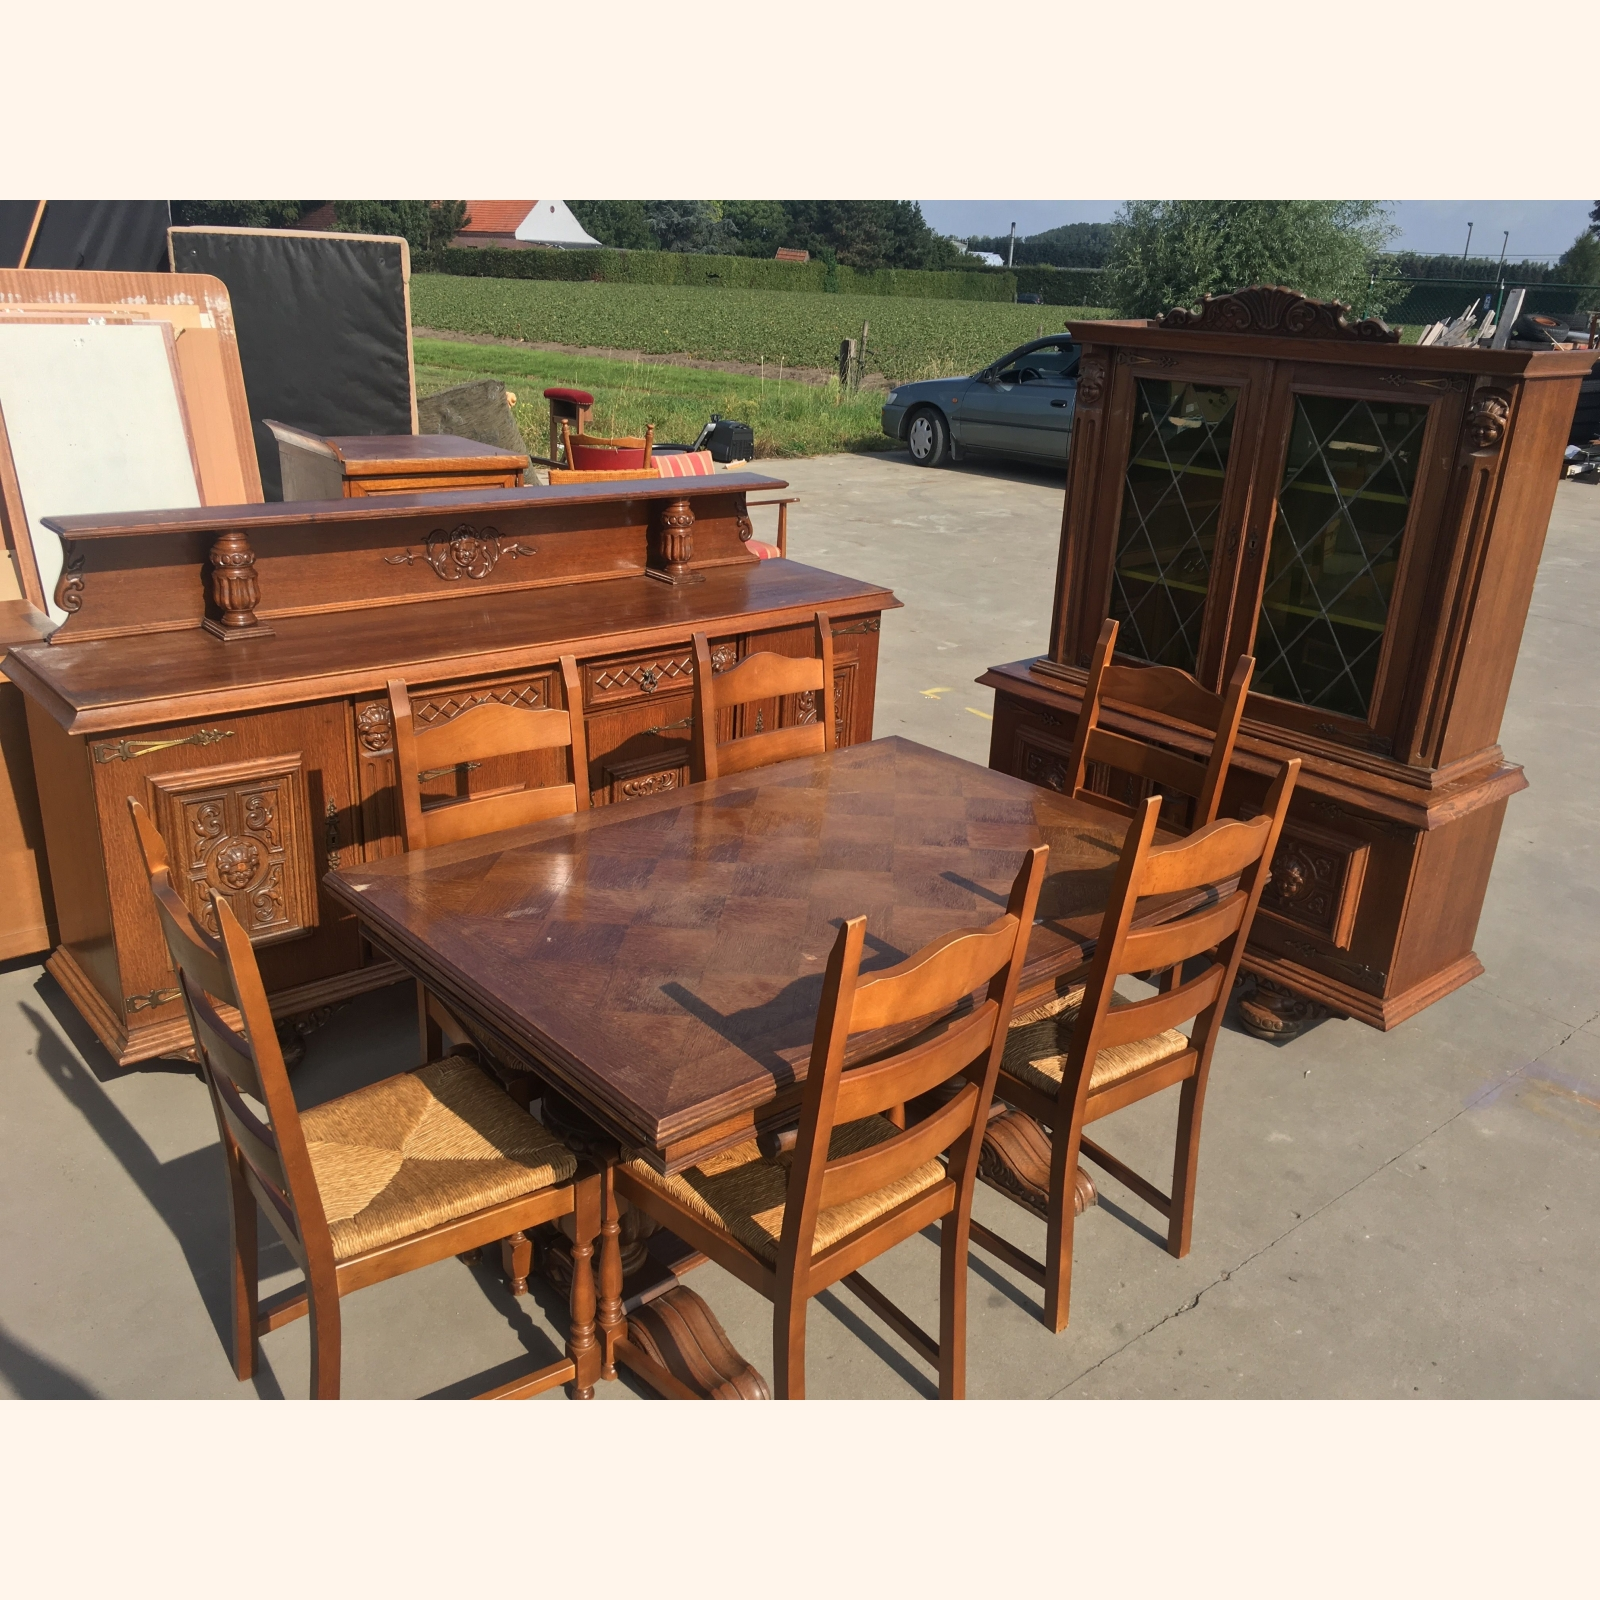 A Solid Wood Dining Room Furniture Sets Mix